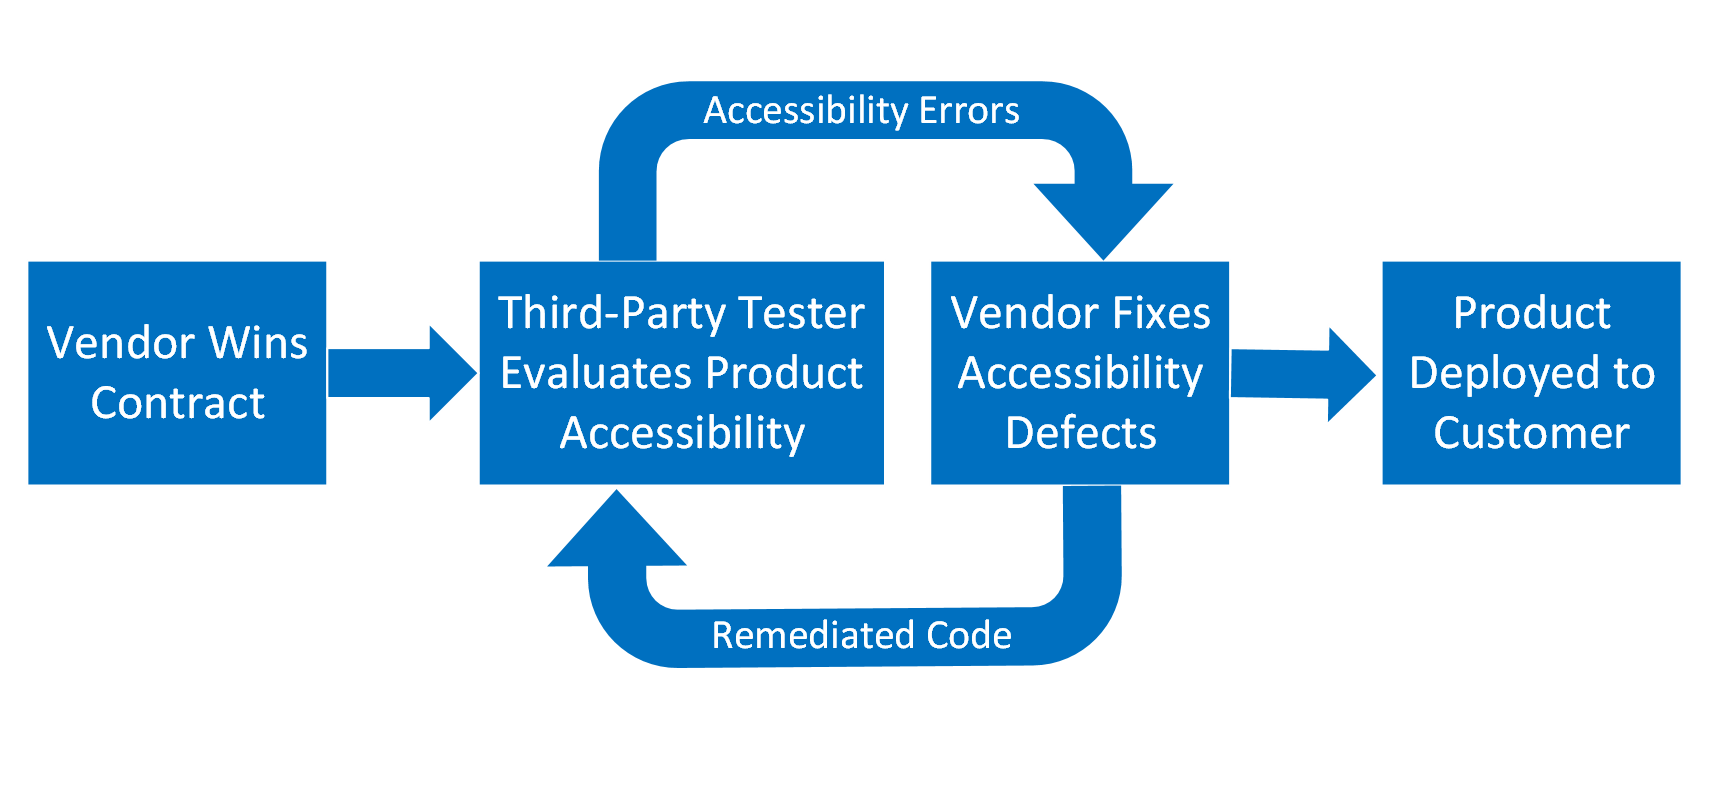 Process flow that demonstrates a vendor winning a contract. Then a 3rd party tester evaluates the product for accessibility. The accessibility errors are then fixed by the vendor and the 3rd part tester retests the remediated code. Eventually, the product is deployed to the customer.